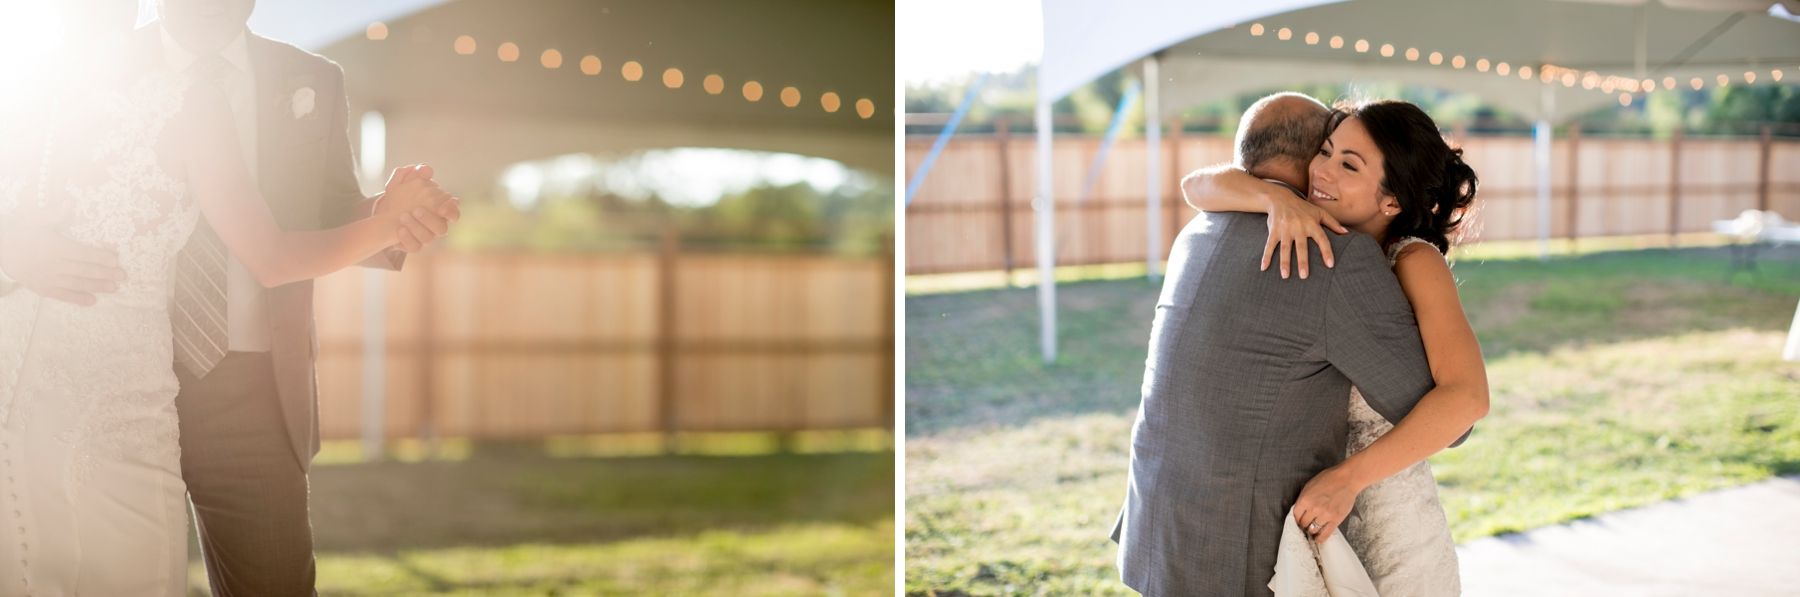 seatte, wedding, photographer, North Bend, Bybee Farms, Snoqualmie, issaqua,_0093.jpg